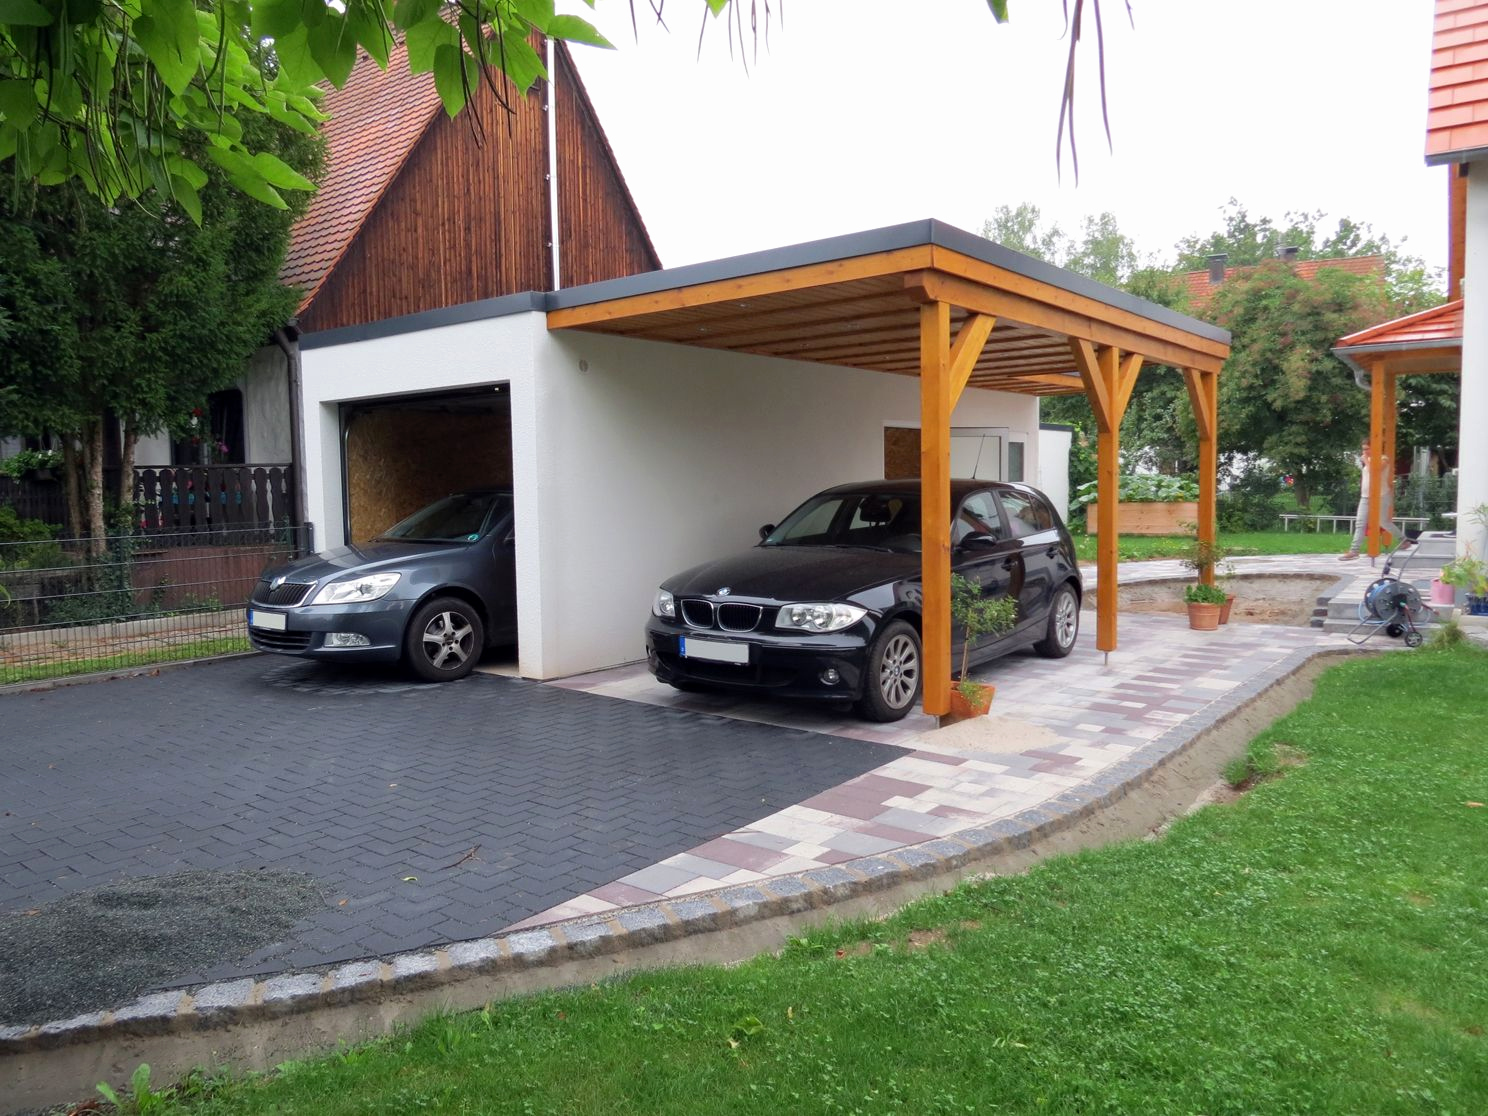 Garage Carport Kombination Frisch Garage Mit Carport In Holz Optik In 2019